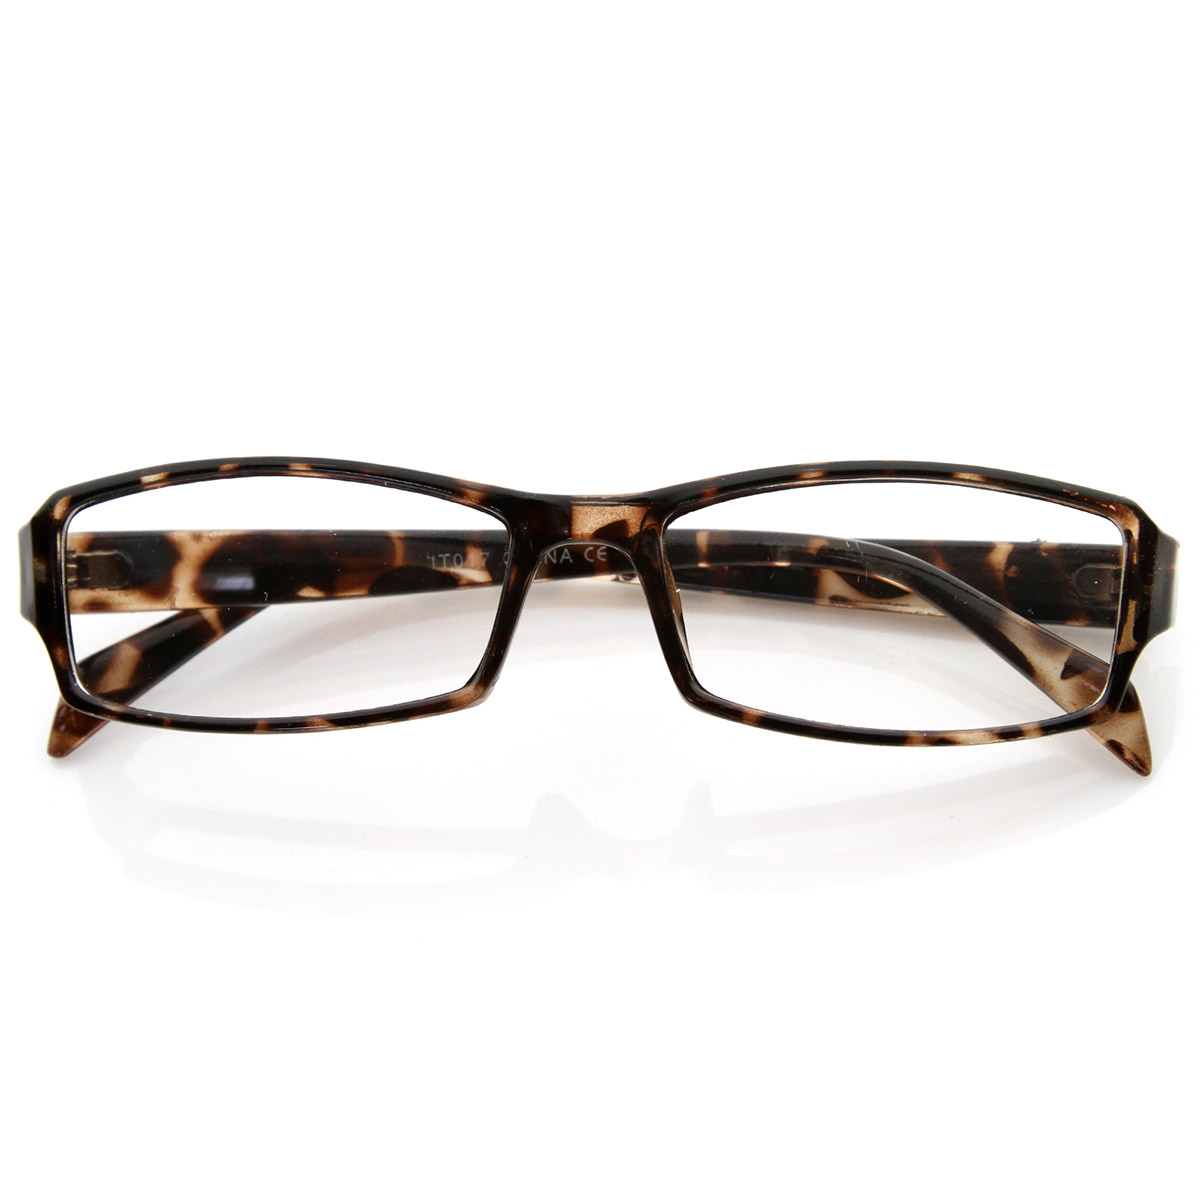 Large Rectangular Glasses Frame : Modern Rectangular Basic Frame Clear Lens Fashion Small ...